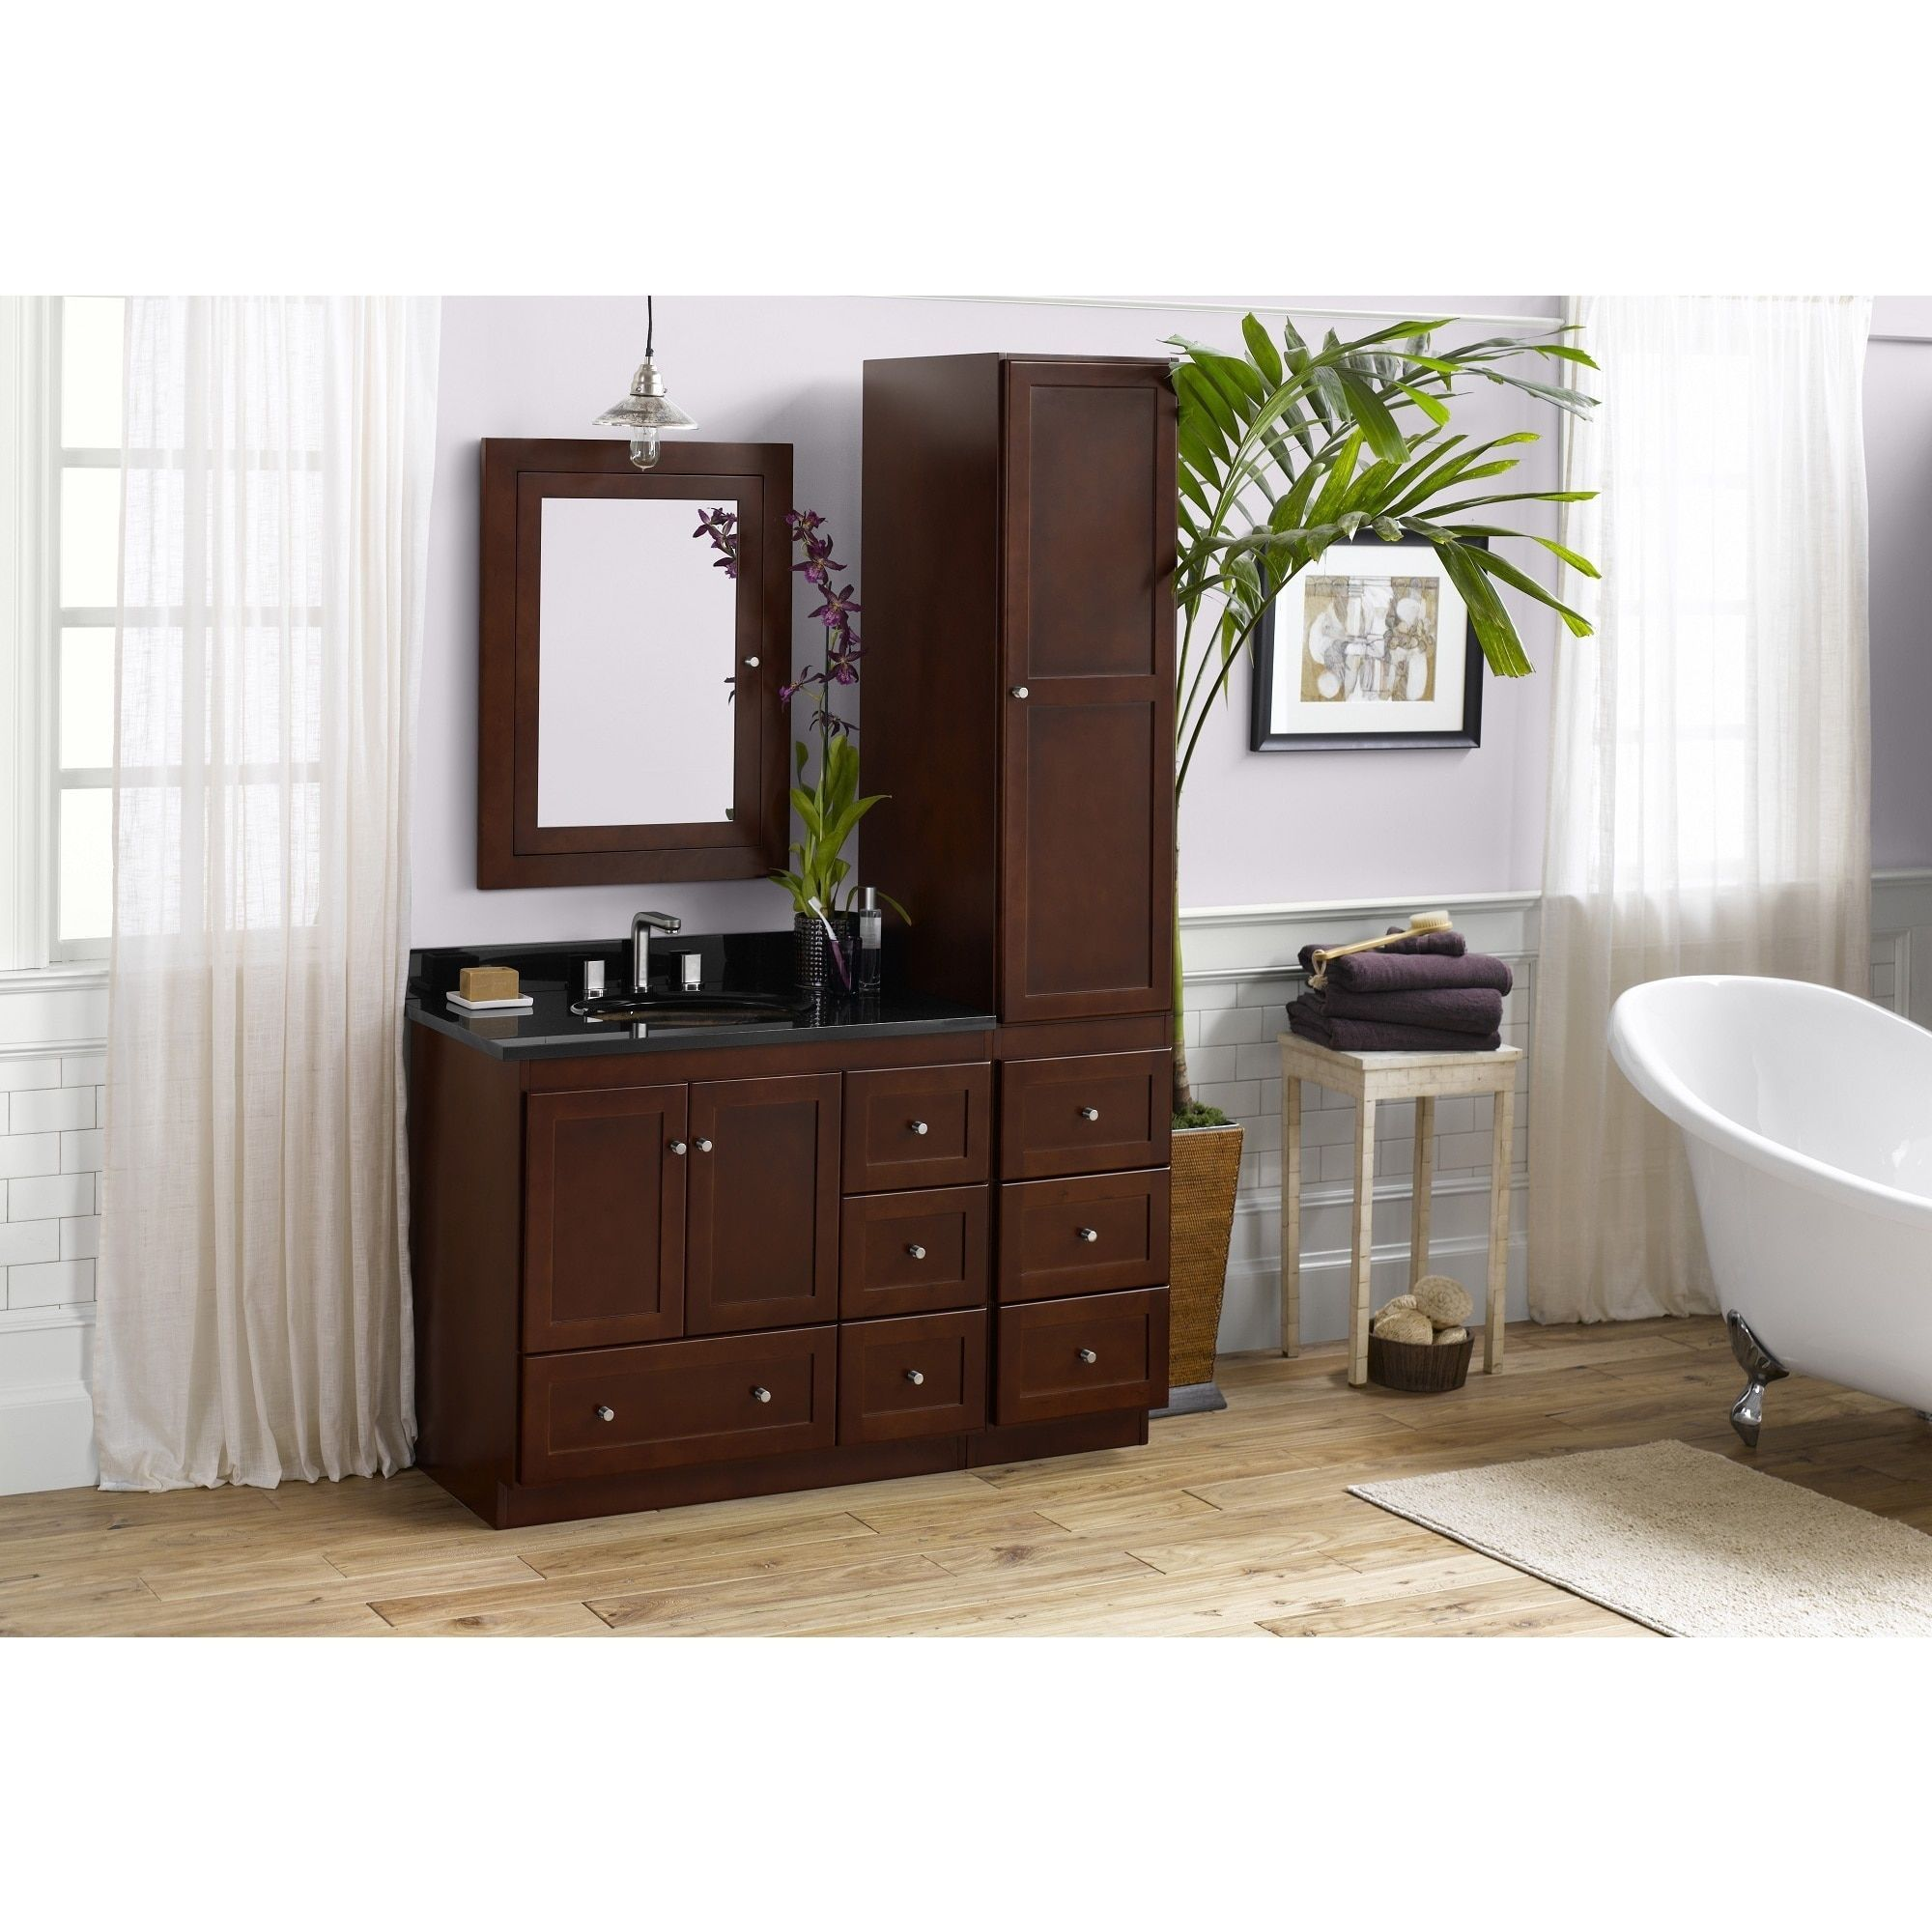 Ronbow Shaker 36 Inch Bathroom Vanity Set In Dark Cherry With Medicine  Cabinet And Linen Tower, Granite Top With White Oval Sink (36, Dark  Cherry), Brown, ...